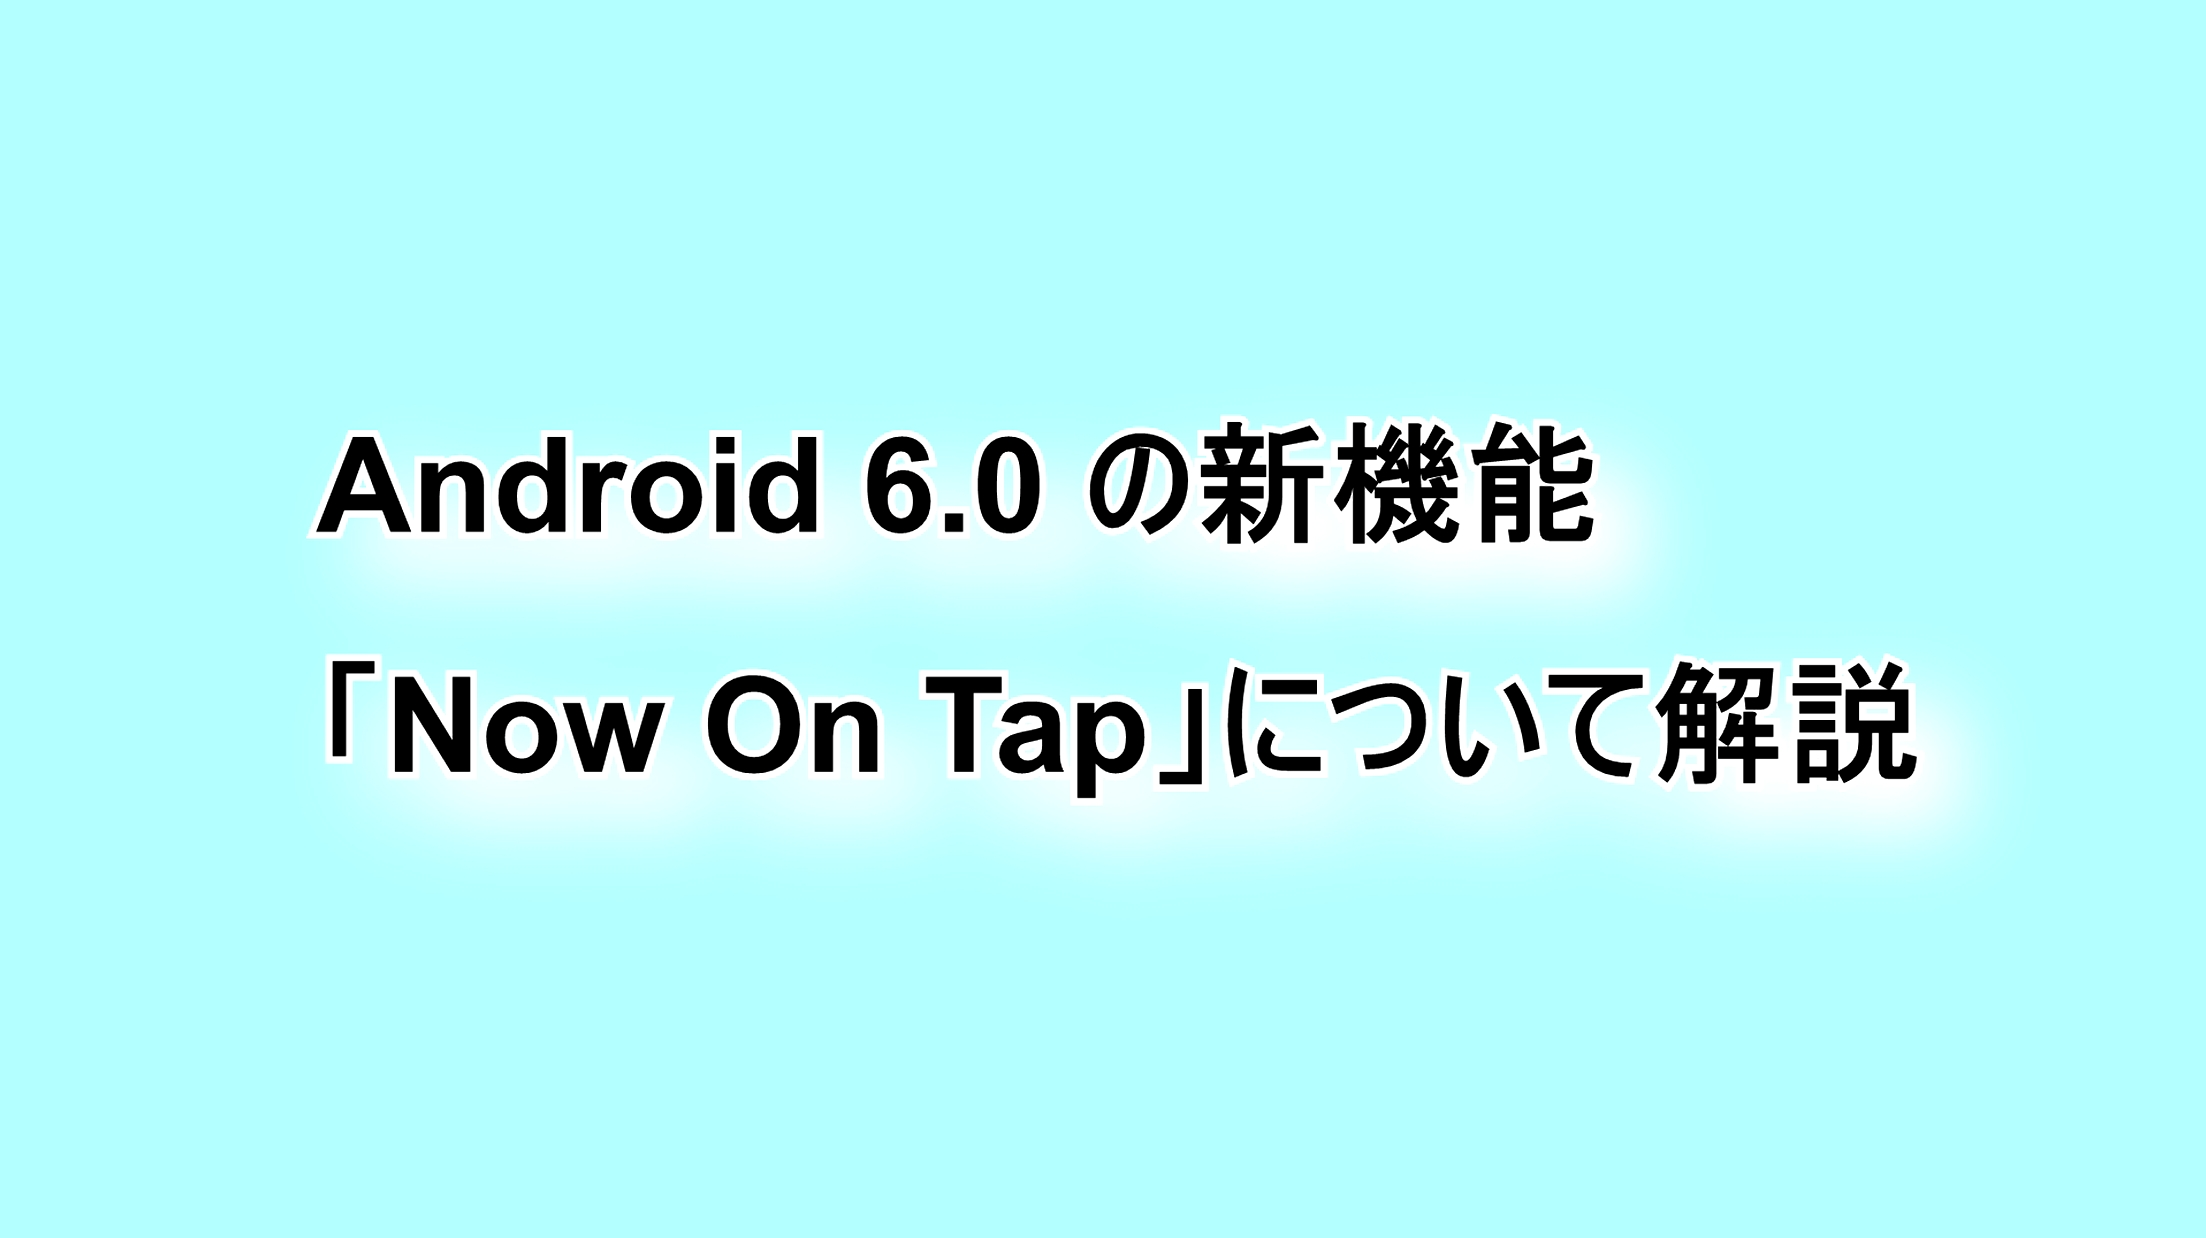 Android 6.0の新機能「Now On Tap」について解説